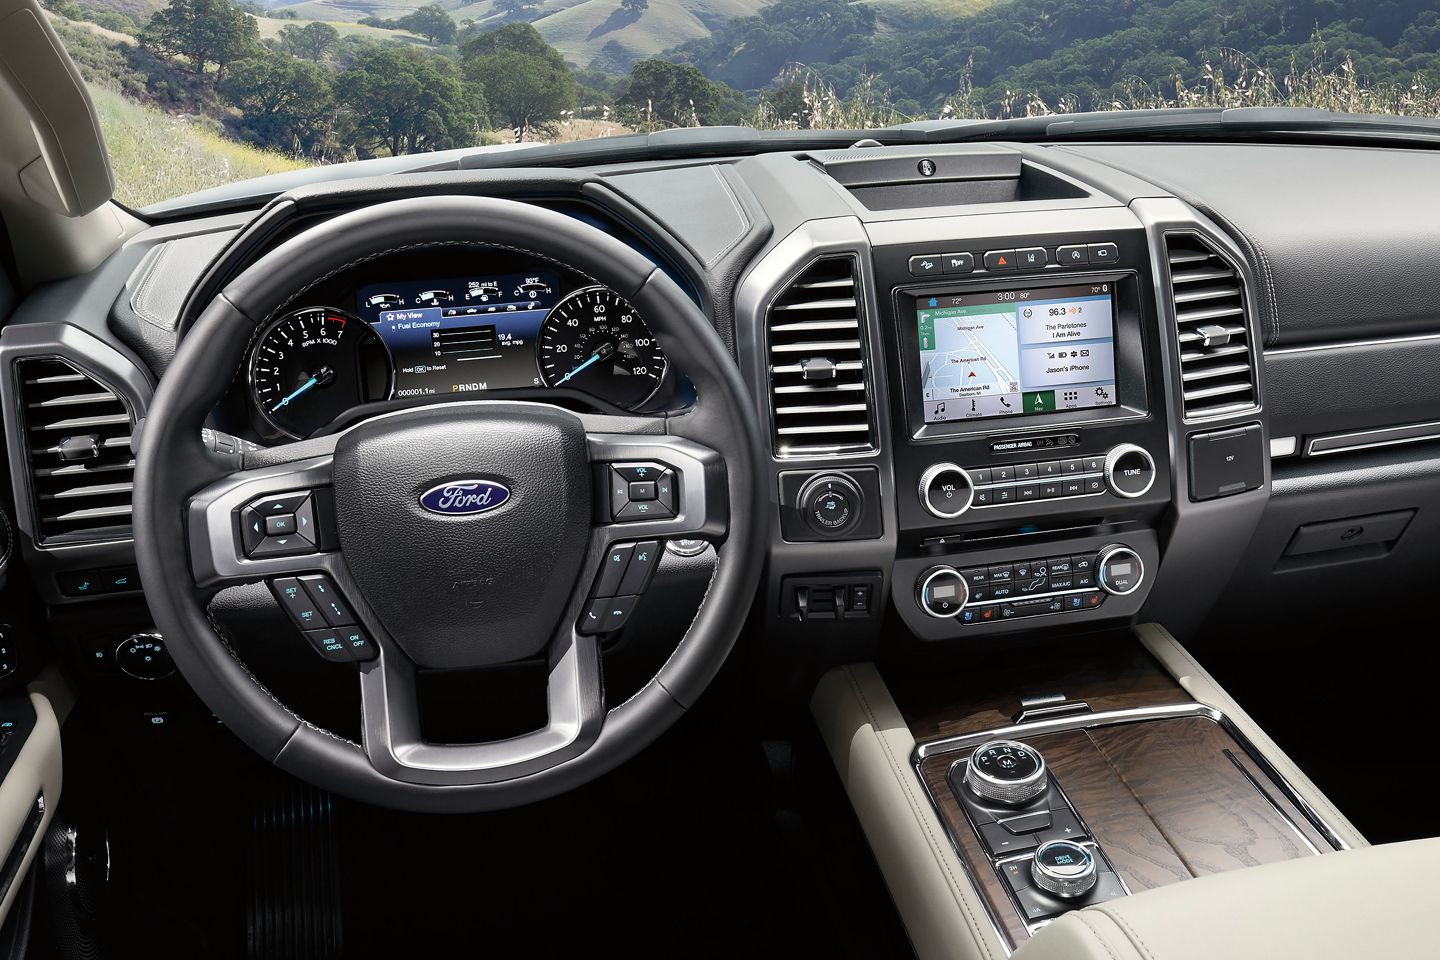 Interior of the 2019 Ford Expedition